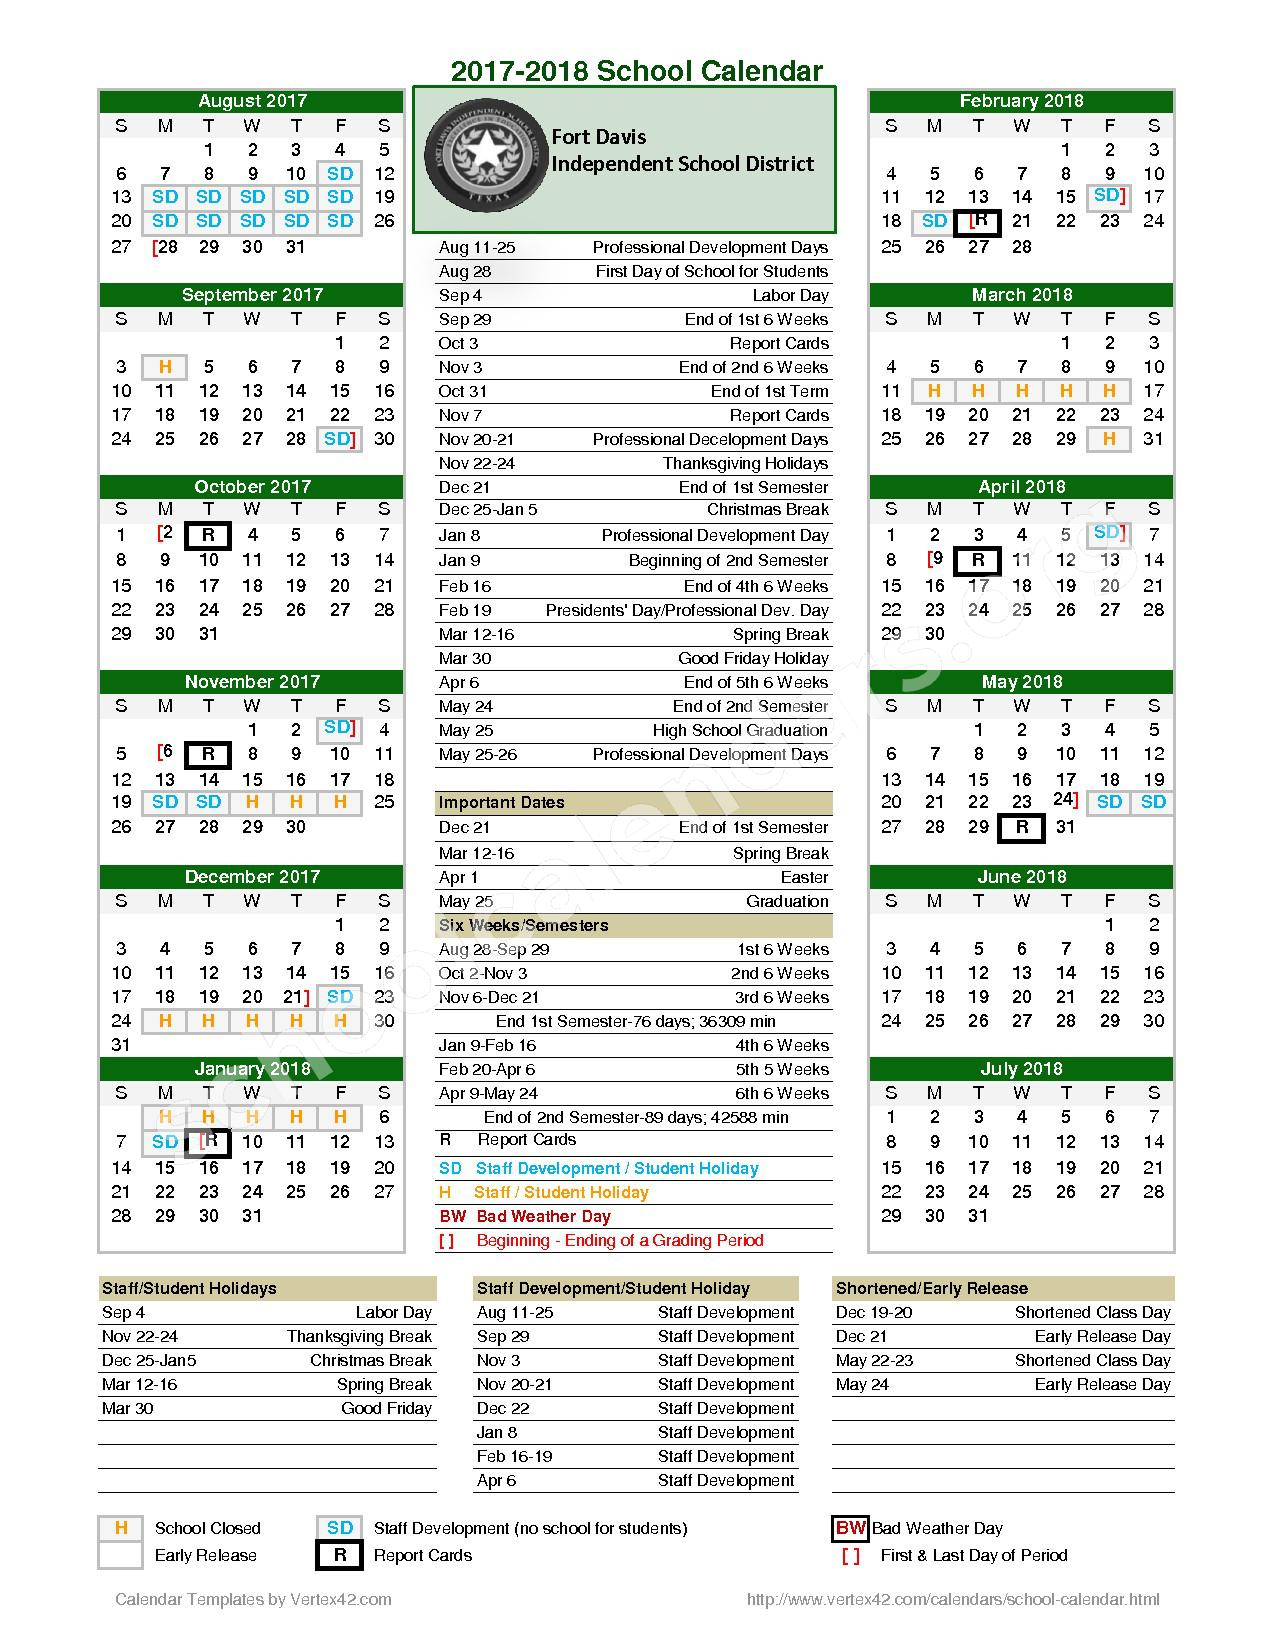 2017 - 2018 District Calendar – Fort Davis Independent School District – page 1